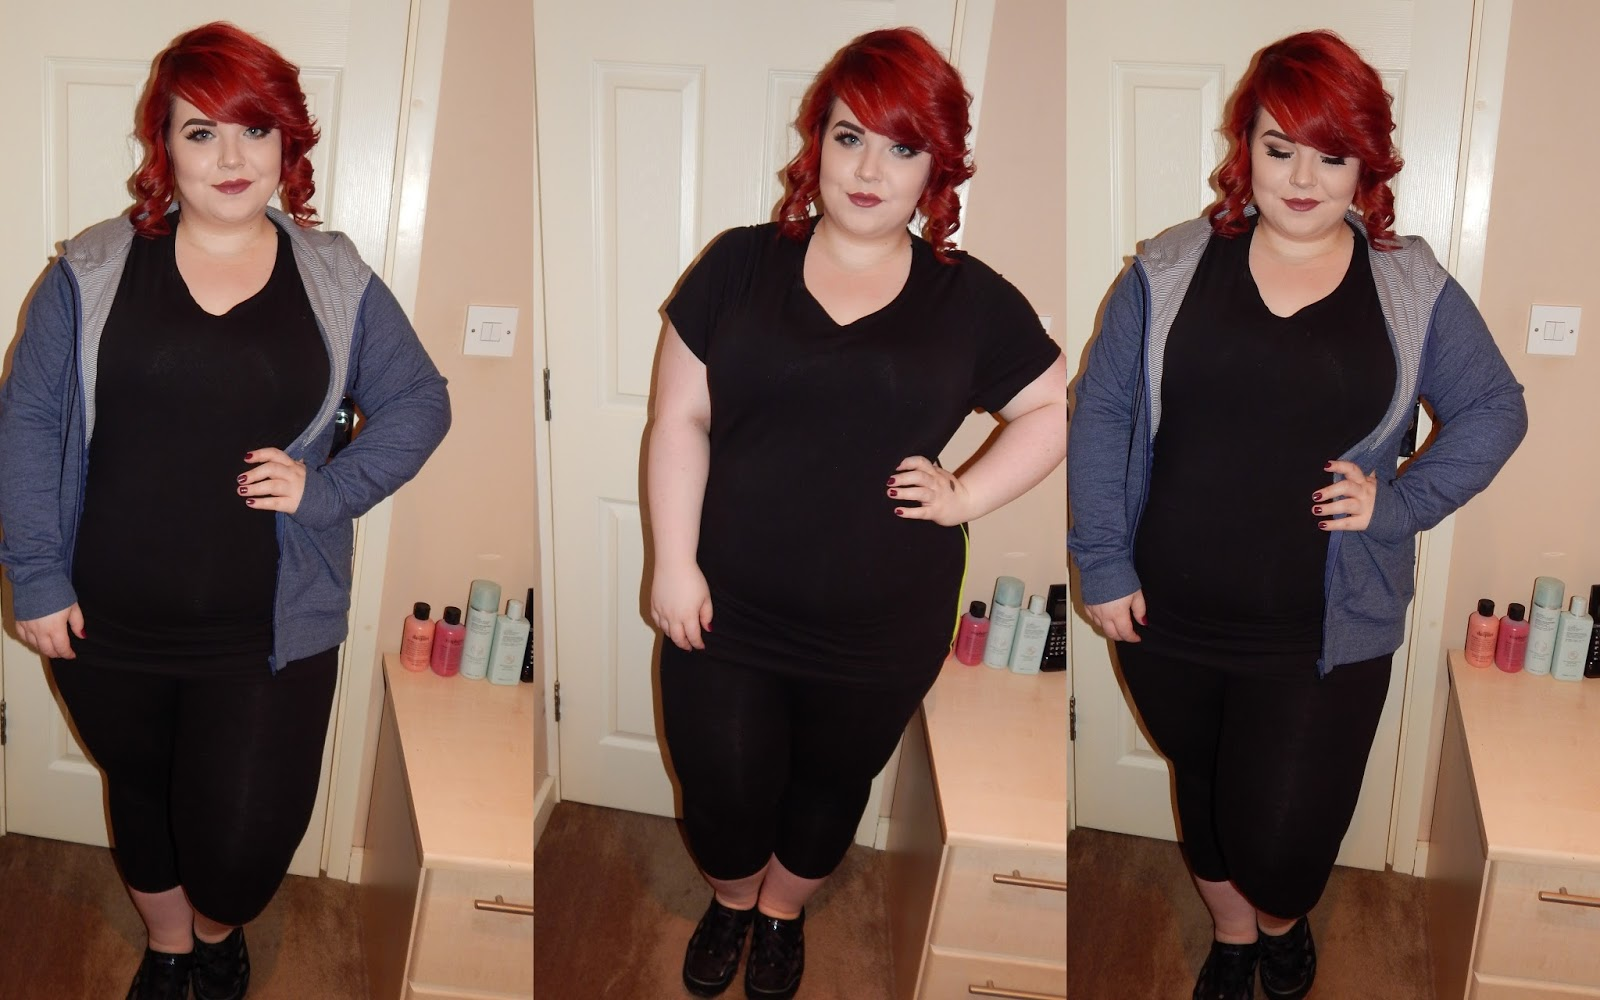 Plus Size Gym Clothes with Simply Be, georgina grogan, plus size blogger